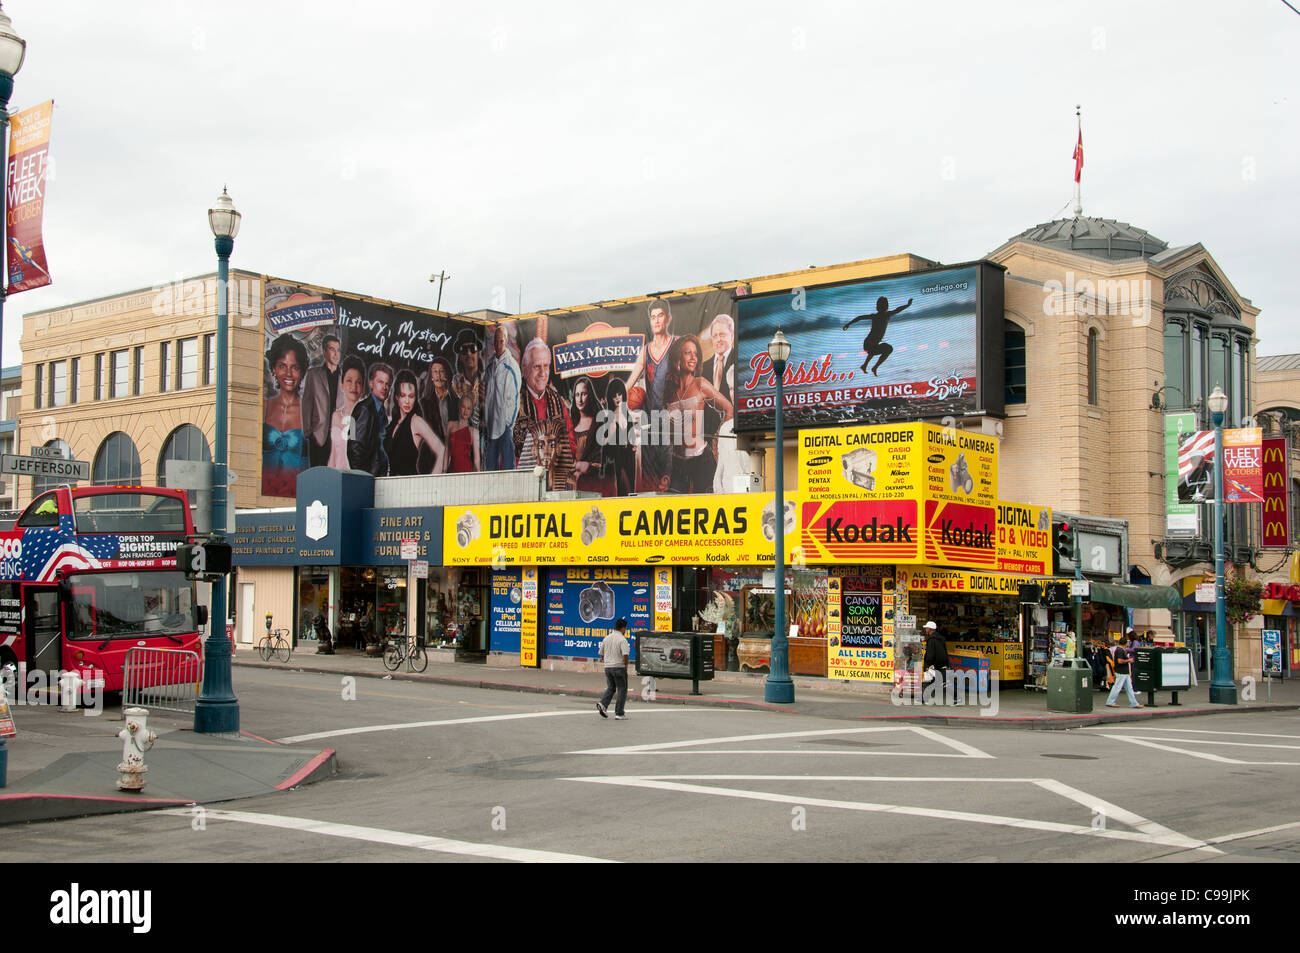 LCamera Kodak Appareils photo numérique Panneau Fishermans Fisherman's Wharf San Francisco California United Photo Stock